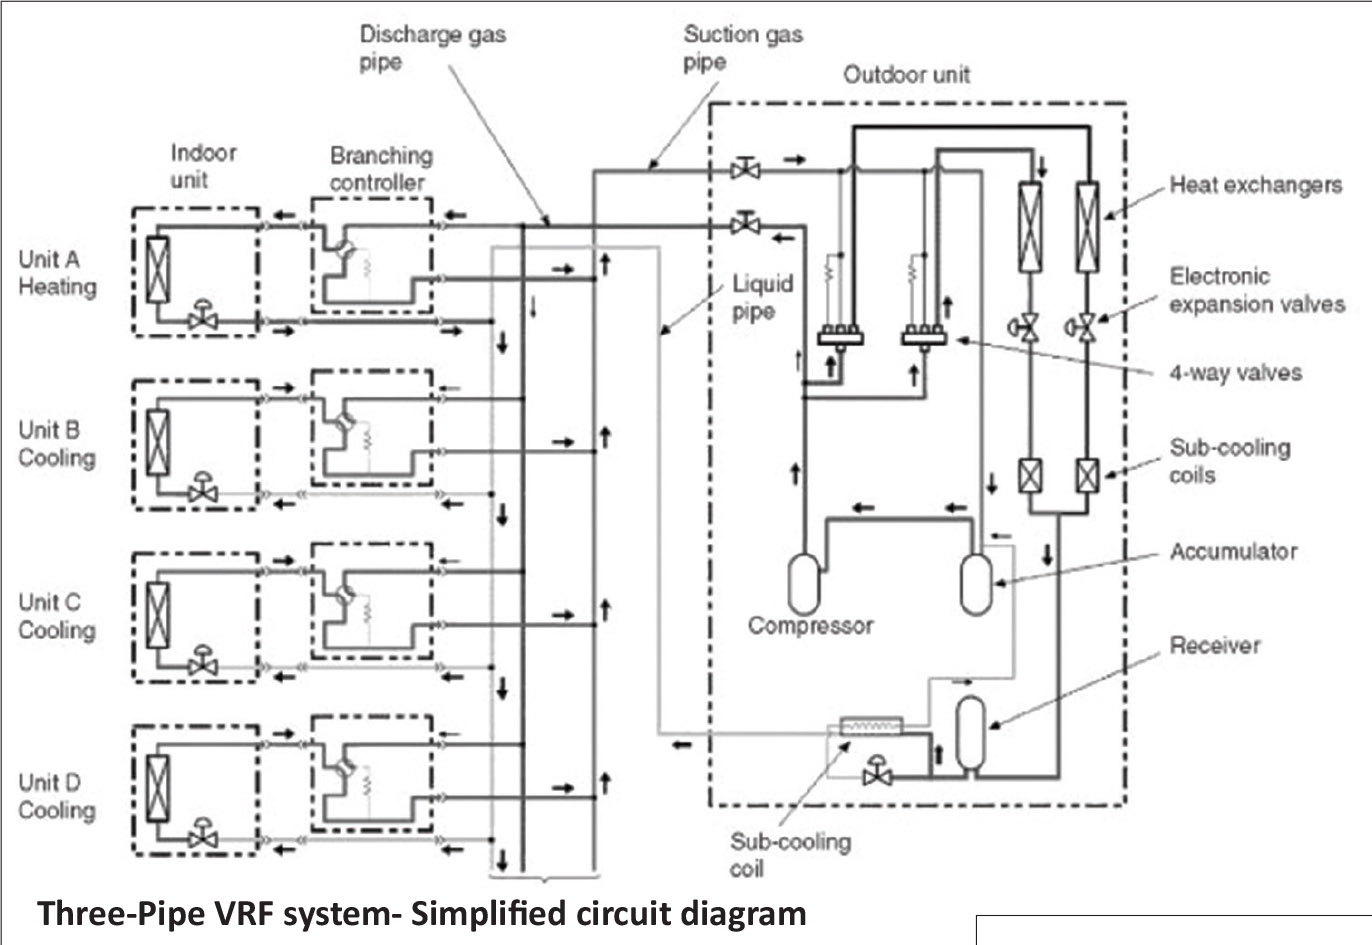 New Hvac Technology Emerges Vrf Vrv Systems Insulation Outlook Floor Heat Piping Diagram Together With Storage Heater Wiring Contractors Understand The Complexities Of These And Make Design Ownership Communities Aware Why Installation Needs